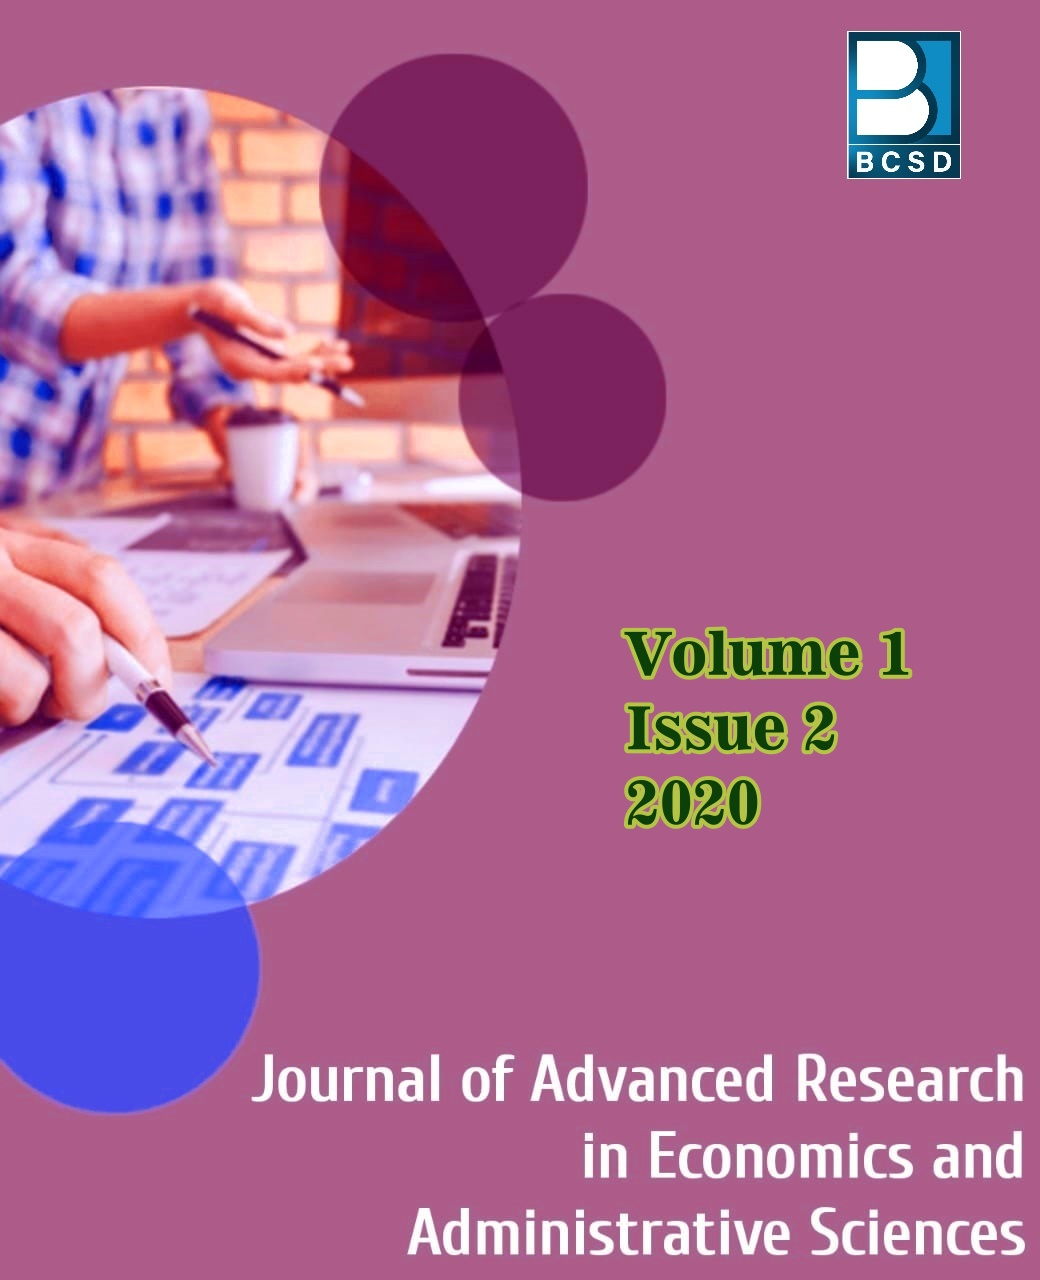 View Vol. 1 No. 2 (2020): Journal of Advanced Research in Economics and Administrative Sciences